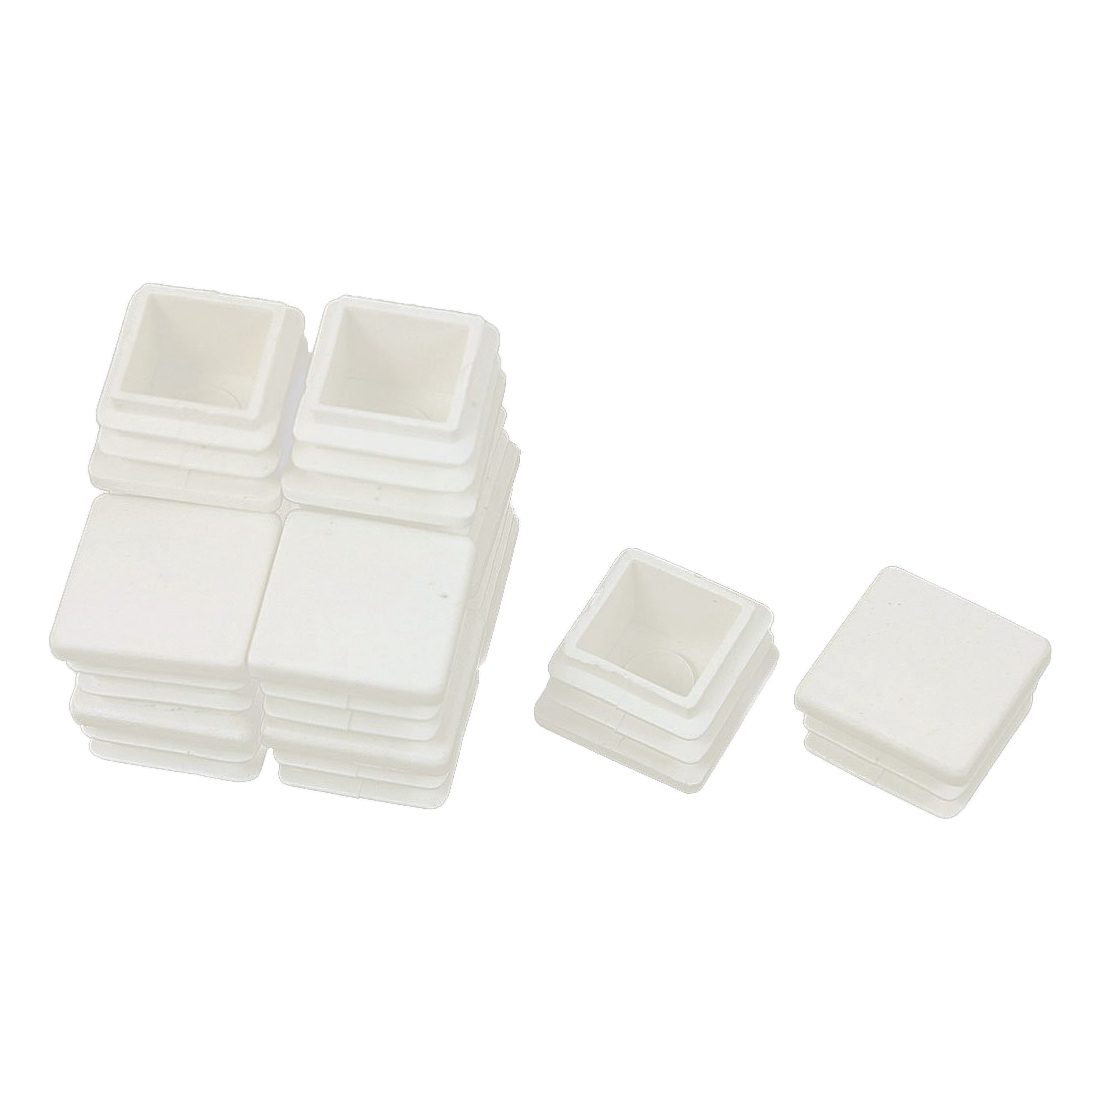 20 Mm X 20 Mm Plastic White End Caps Blanking Version Of The Caps Spare Caps Accessories For Professional Square Tube Inserts